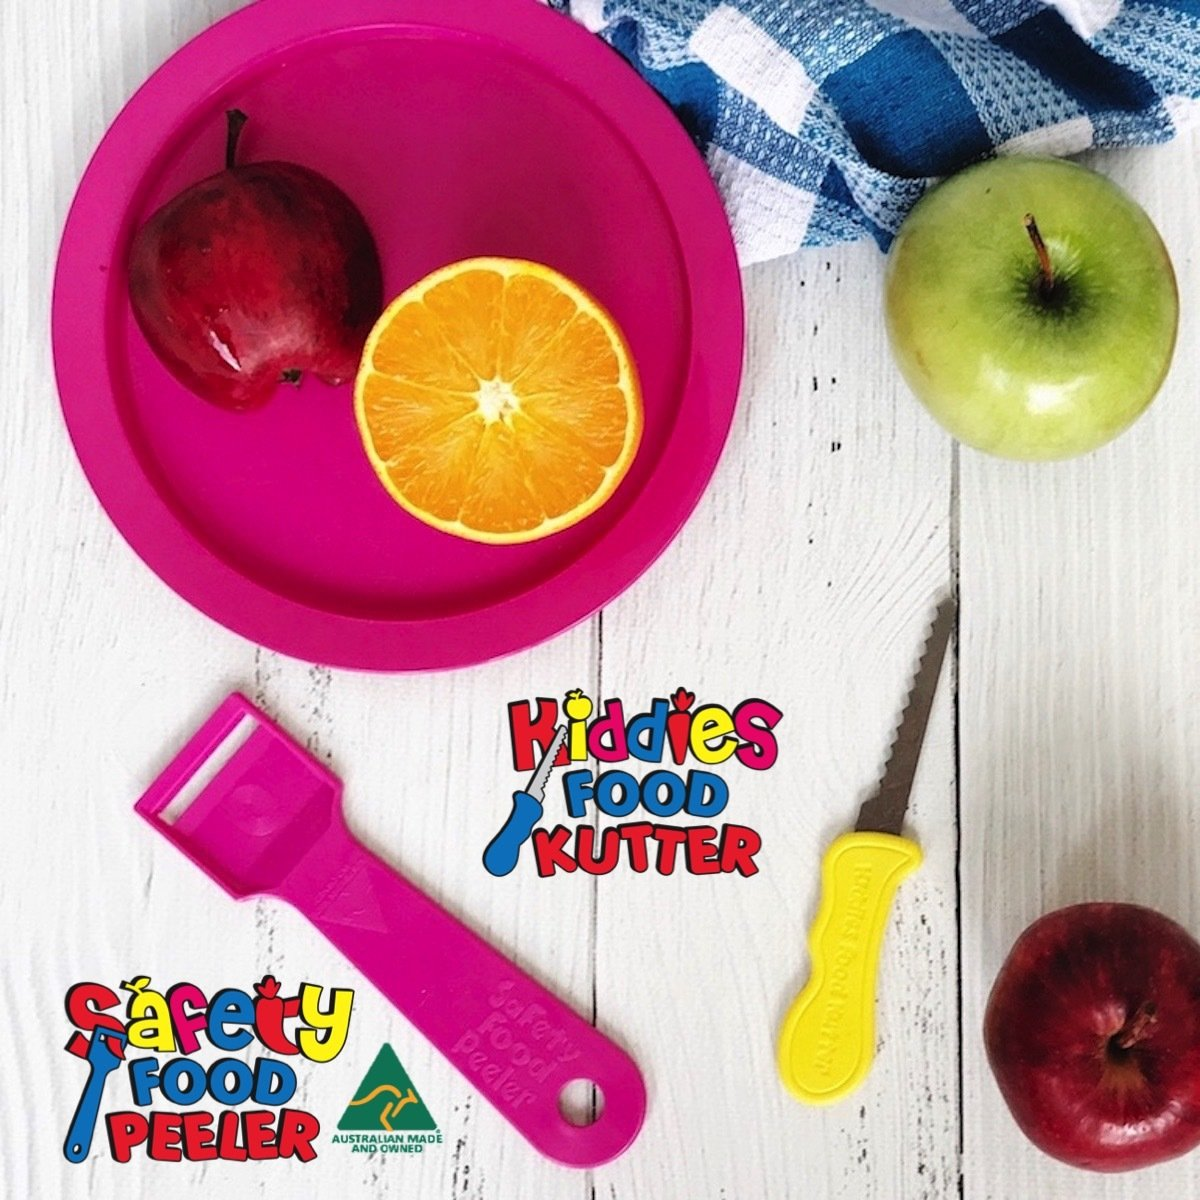 Kiddies Food Kutter & Safety Food Peeler